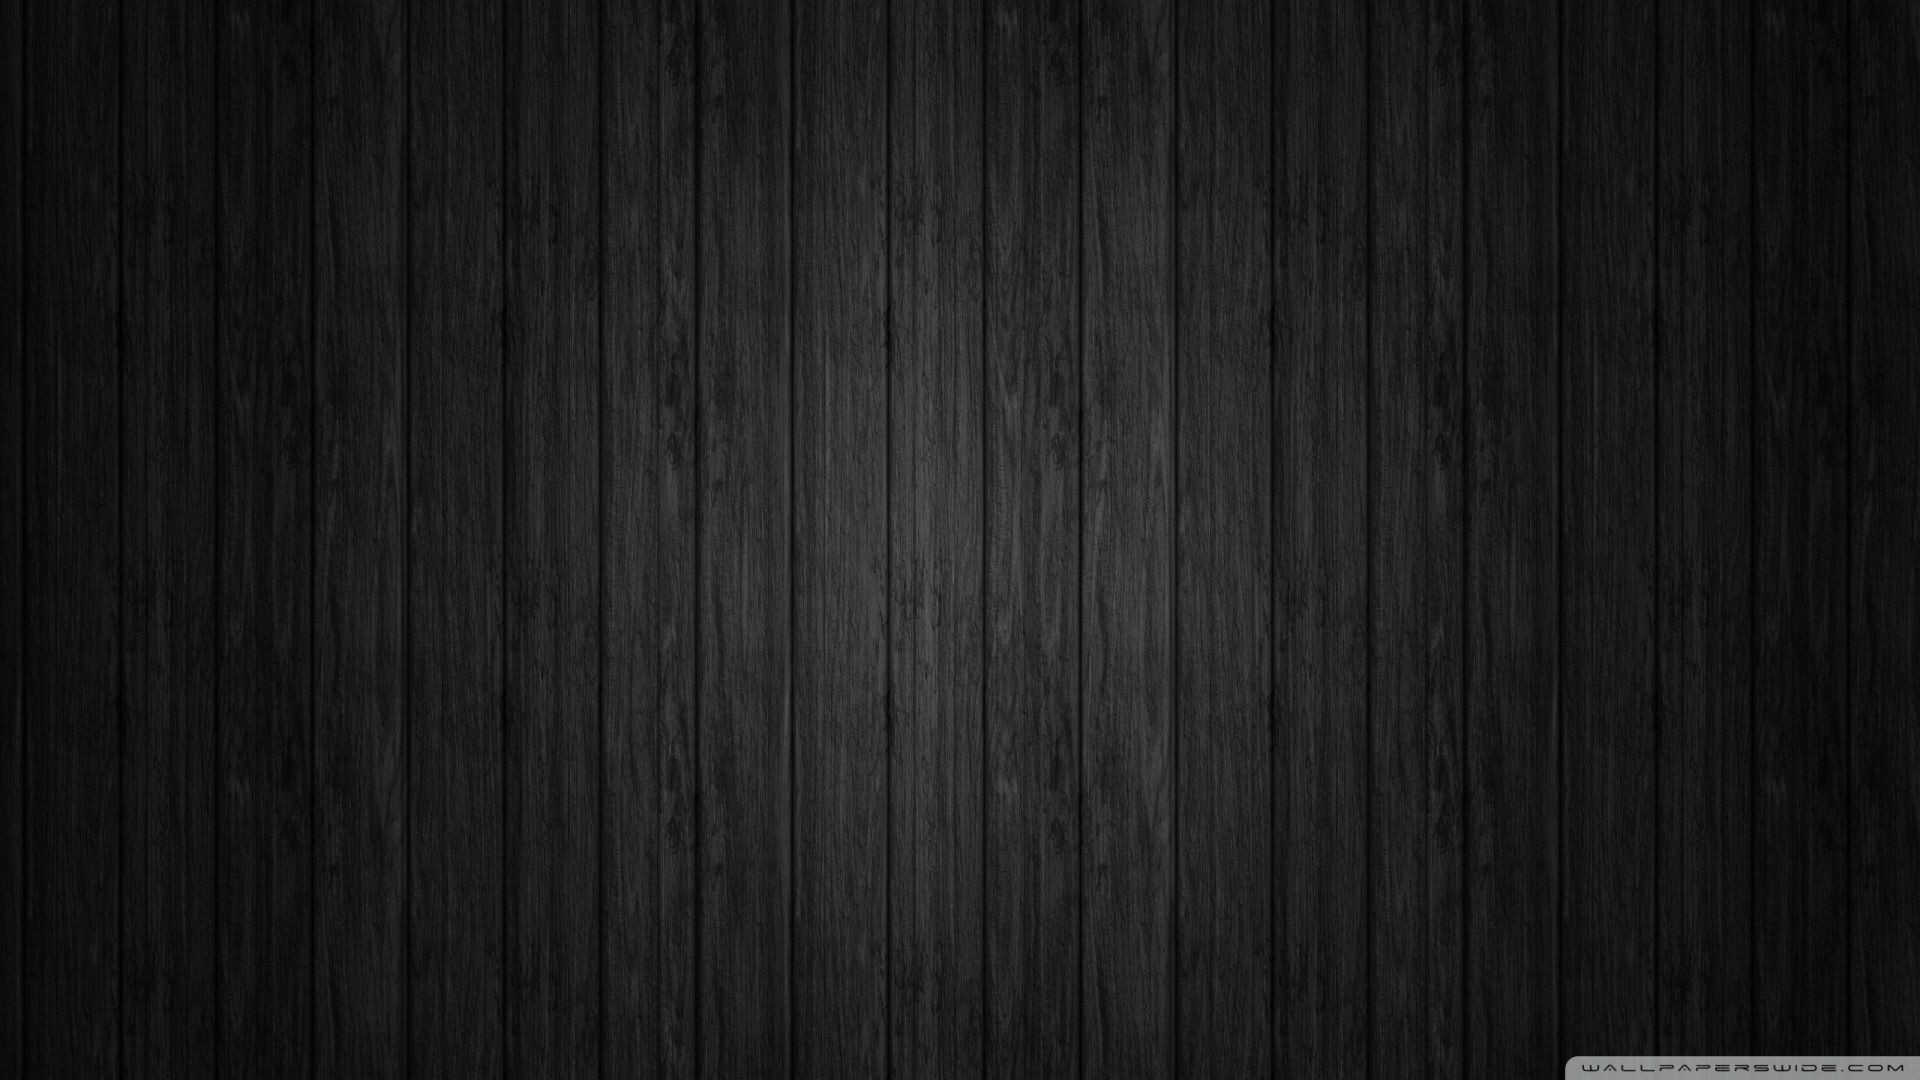 black theme wallpaper 1080p (70+ images)